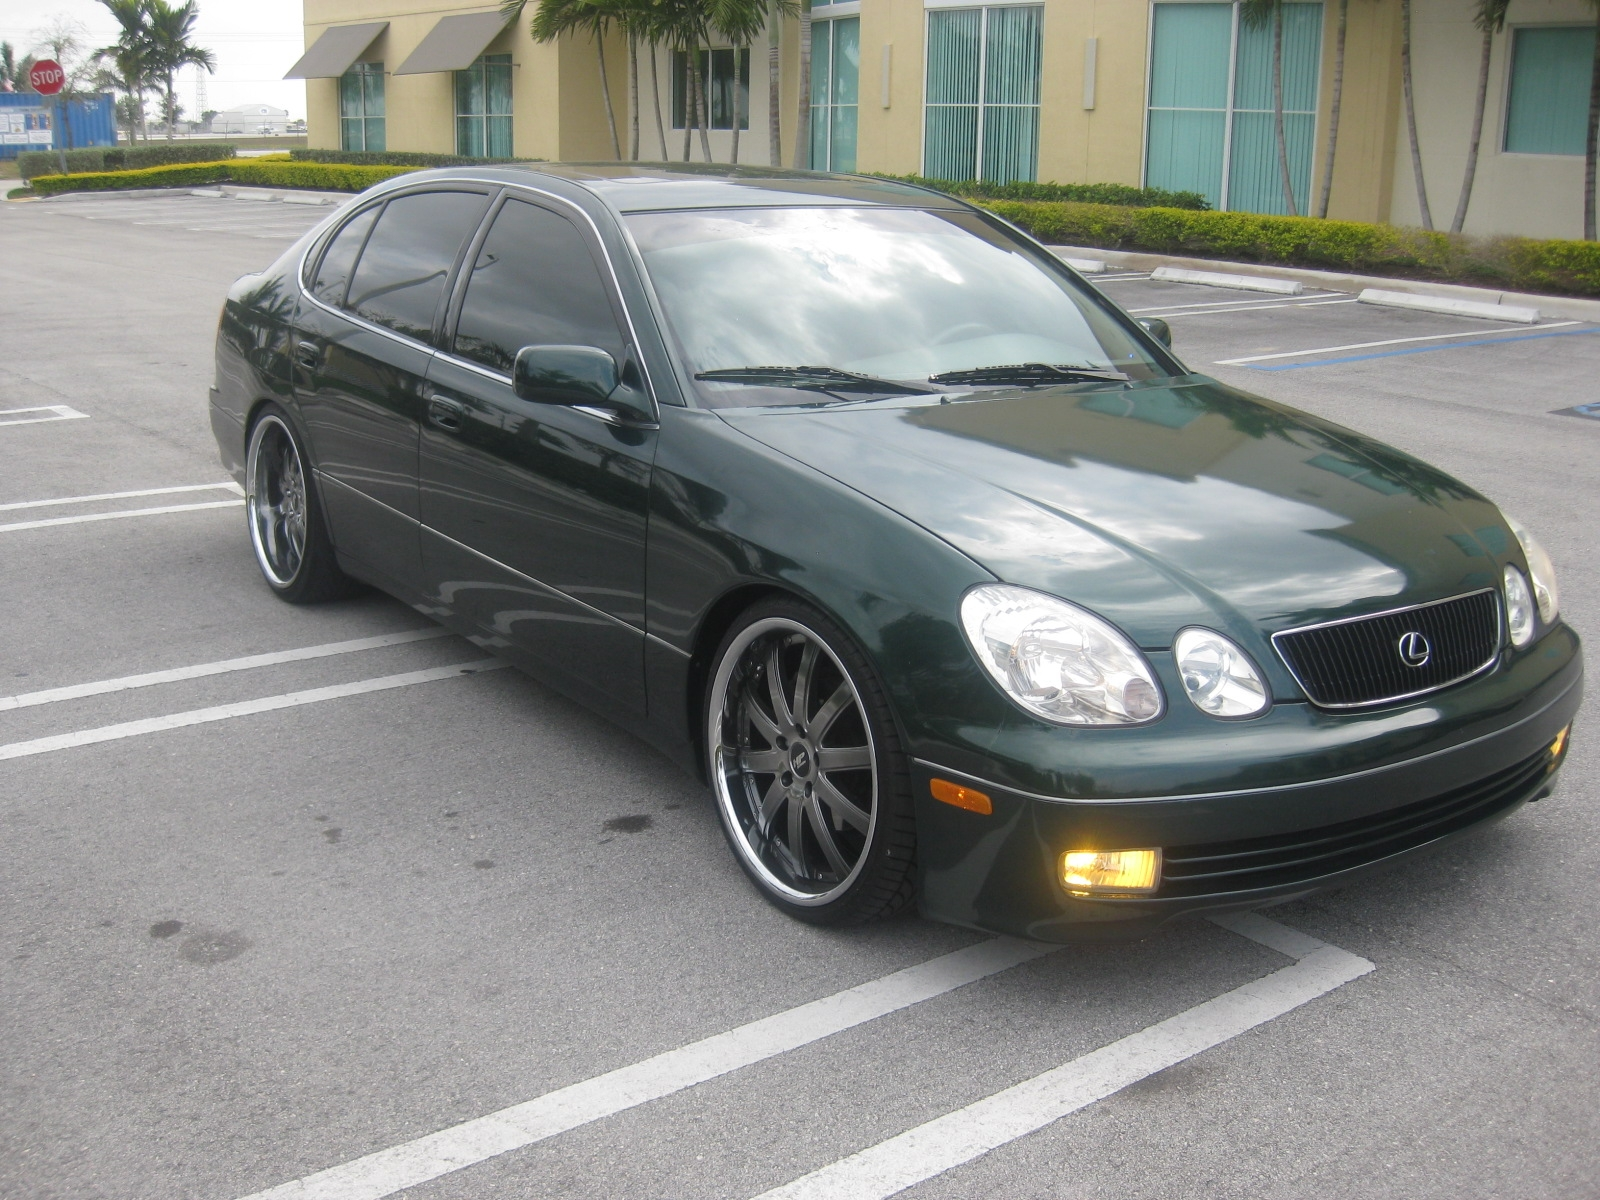 lobster305 1999 Lexus GS 12766830